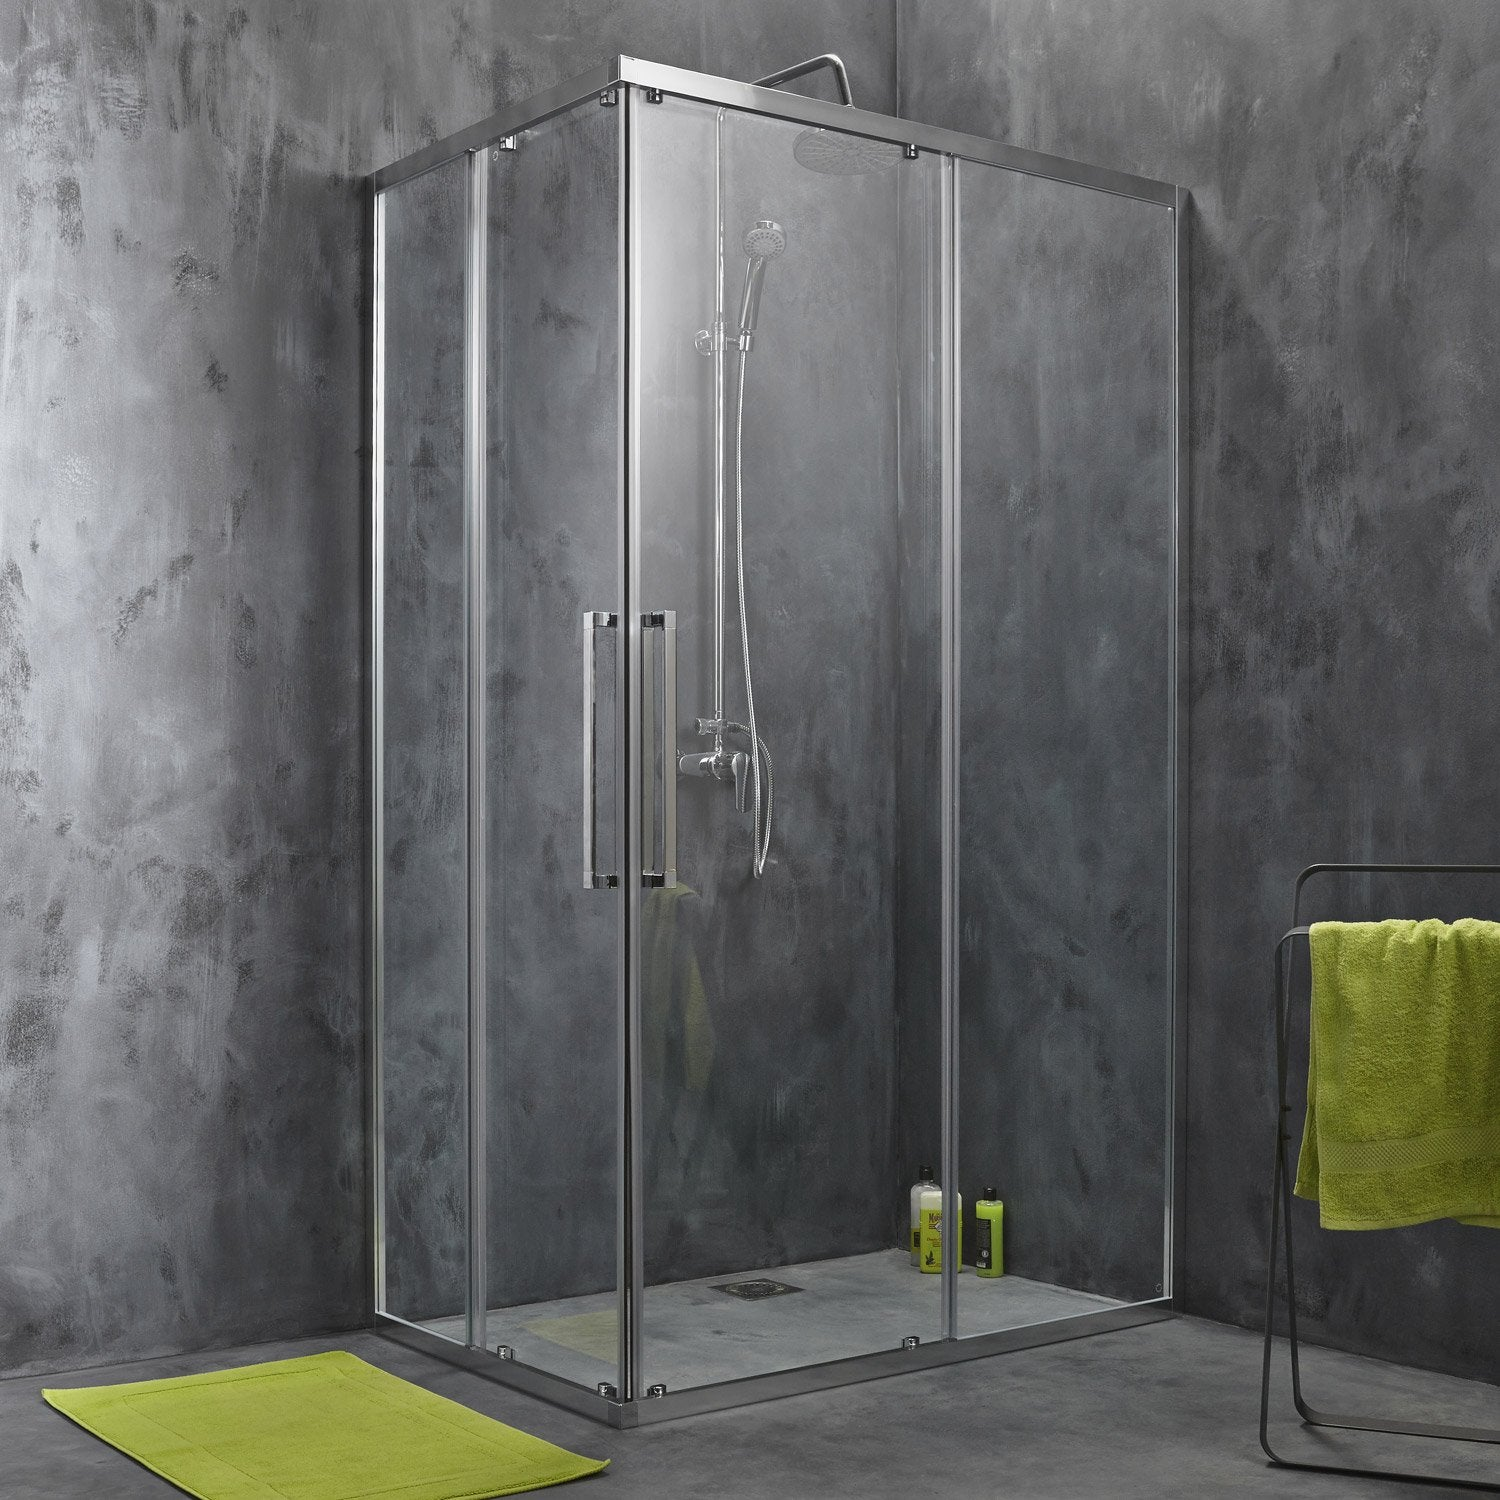 Porte de douche coulissante angle rectangle 120 x 80 cm - Leroy merlin porte de douche ...